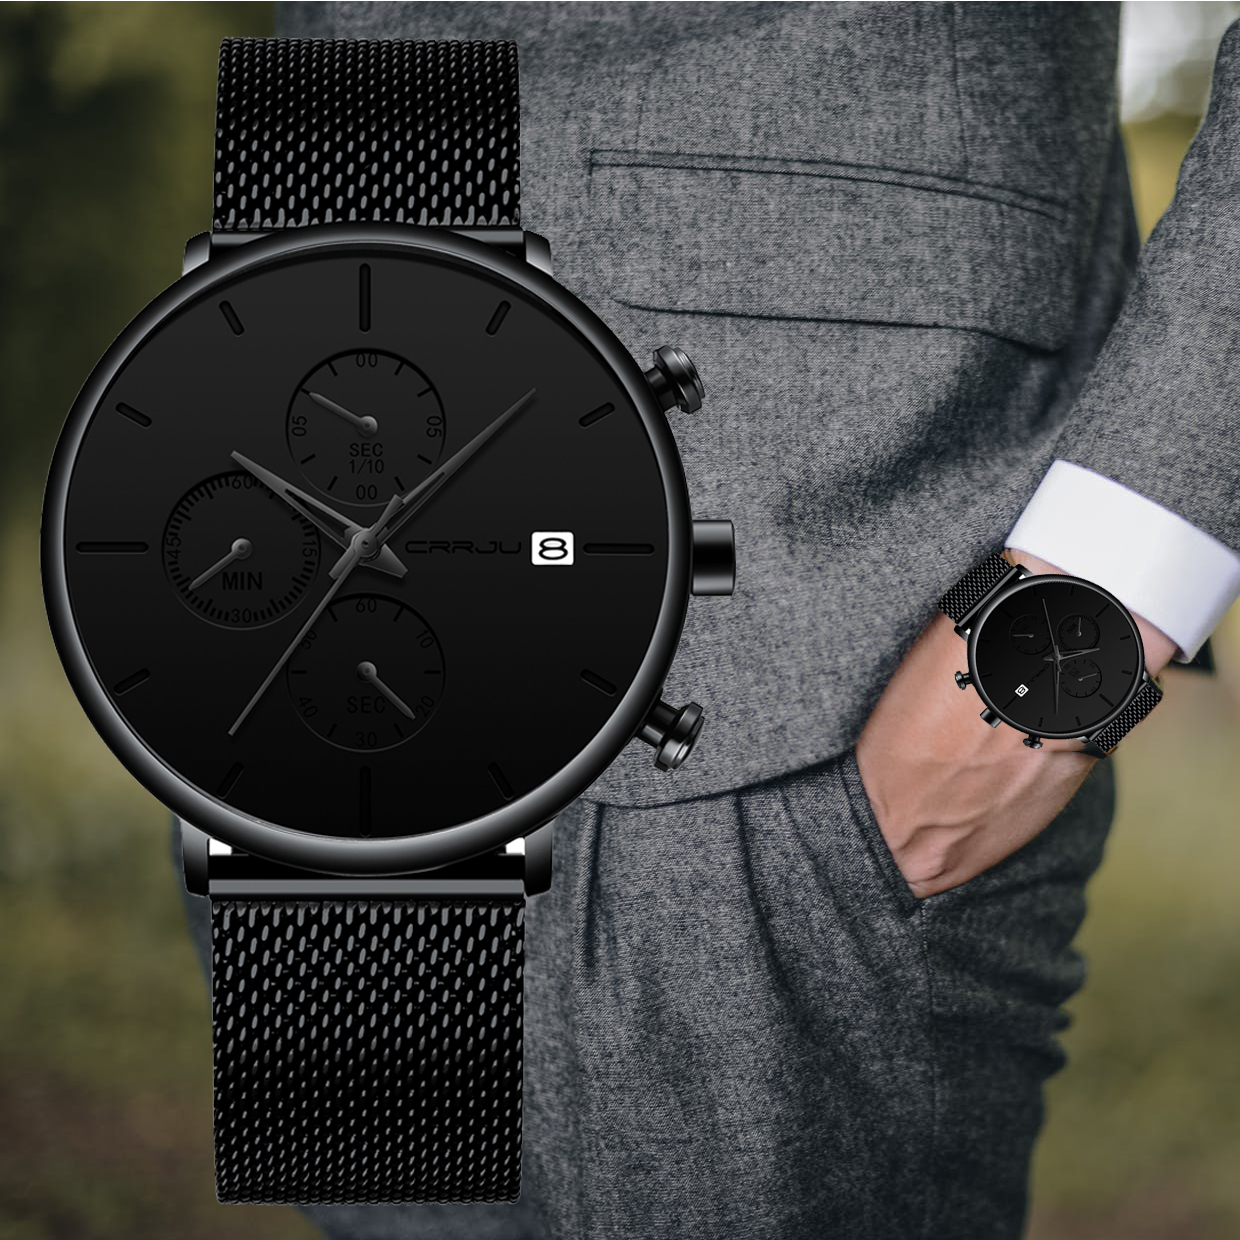 Luxury Brand CRRJU Men Watch 2020 New Minimalist Classic Multi-function Chronograph Waterproof Mesh Wristwatch With Date Display